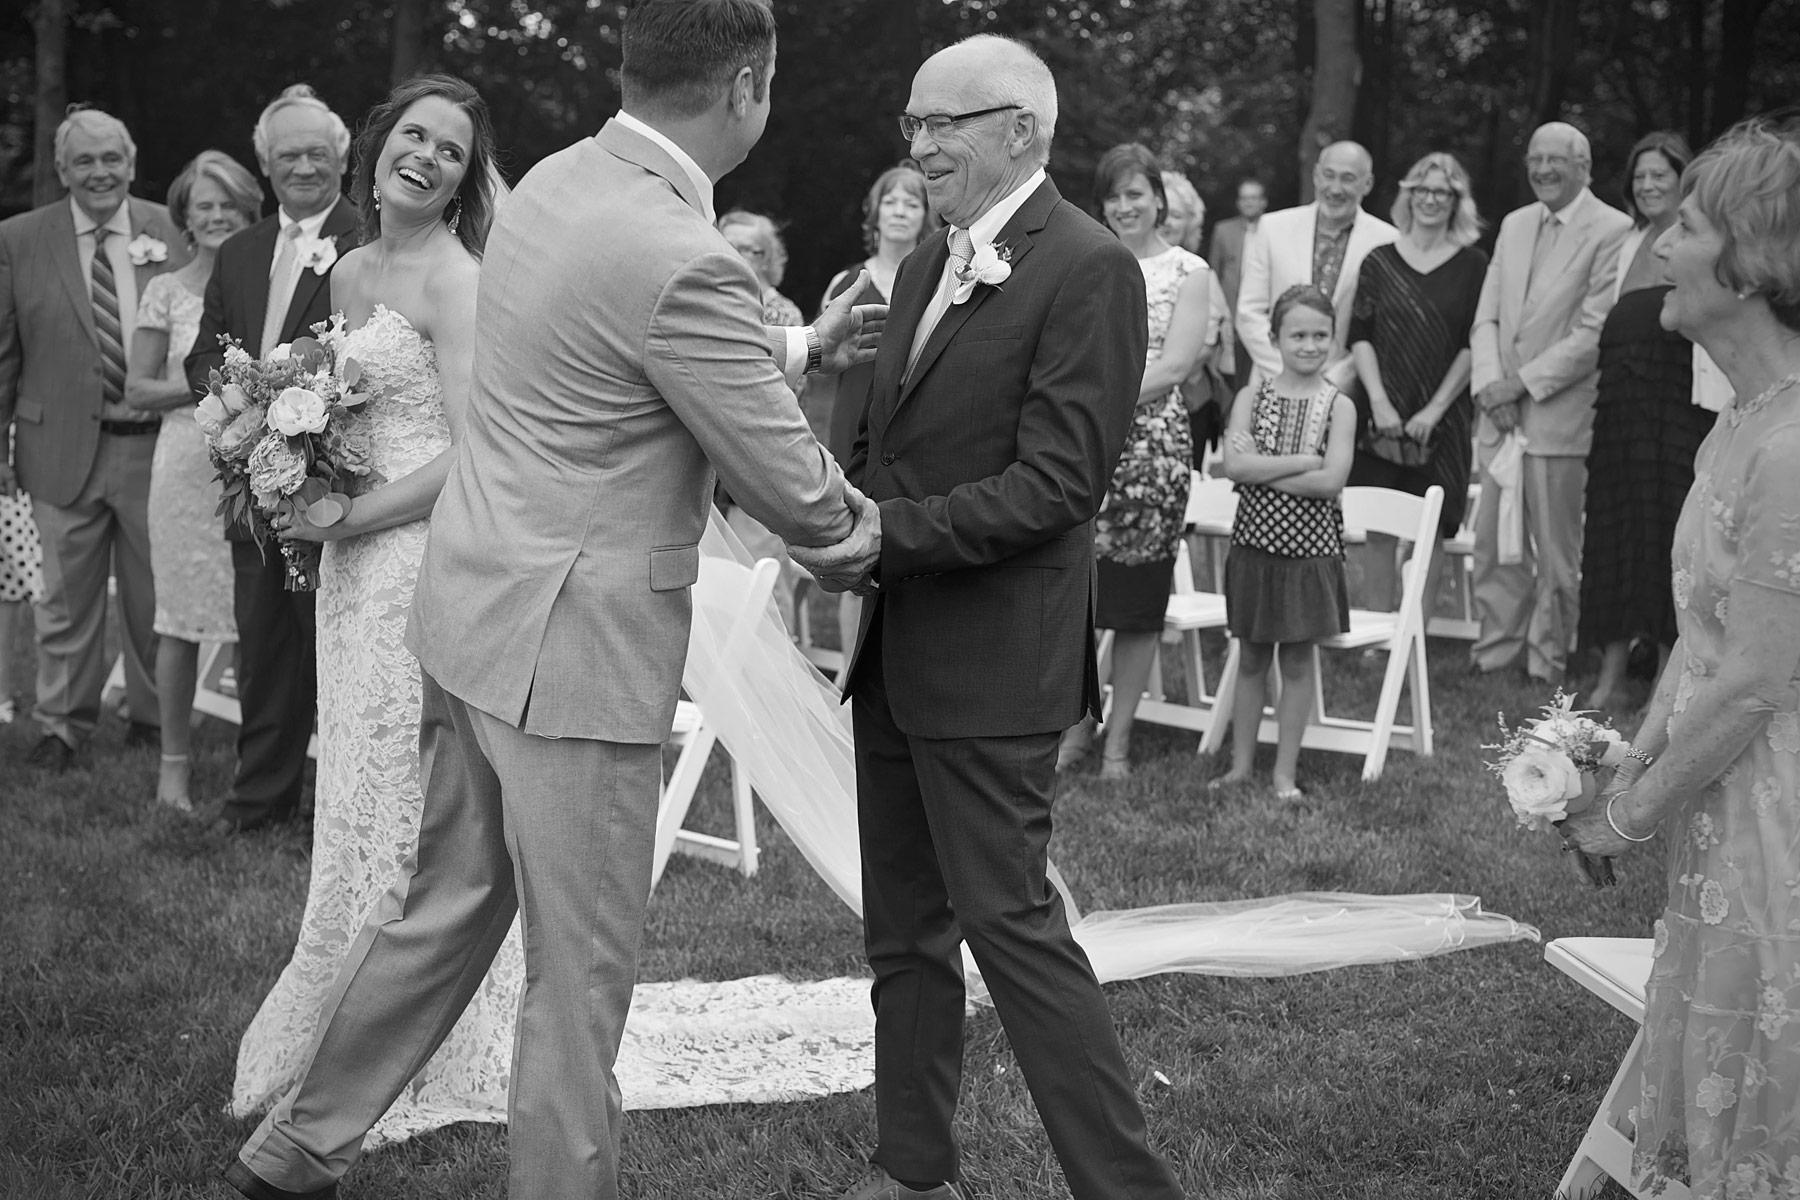 Father of the bride shakes grooms hand as bride looks on